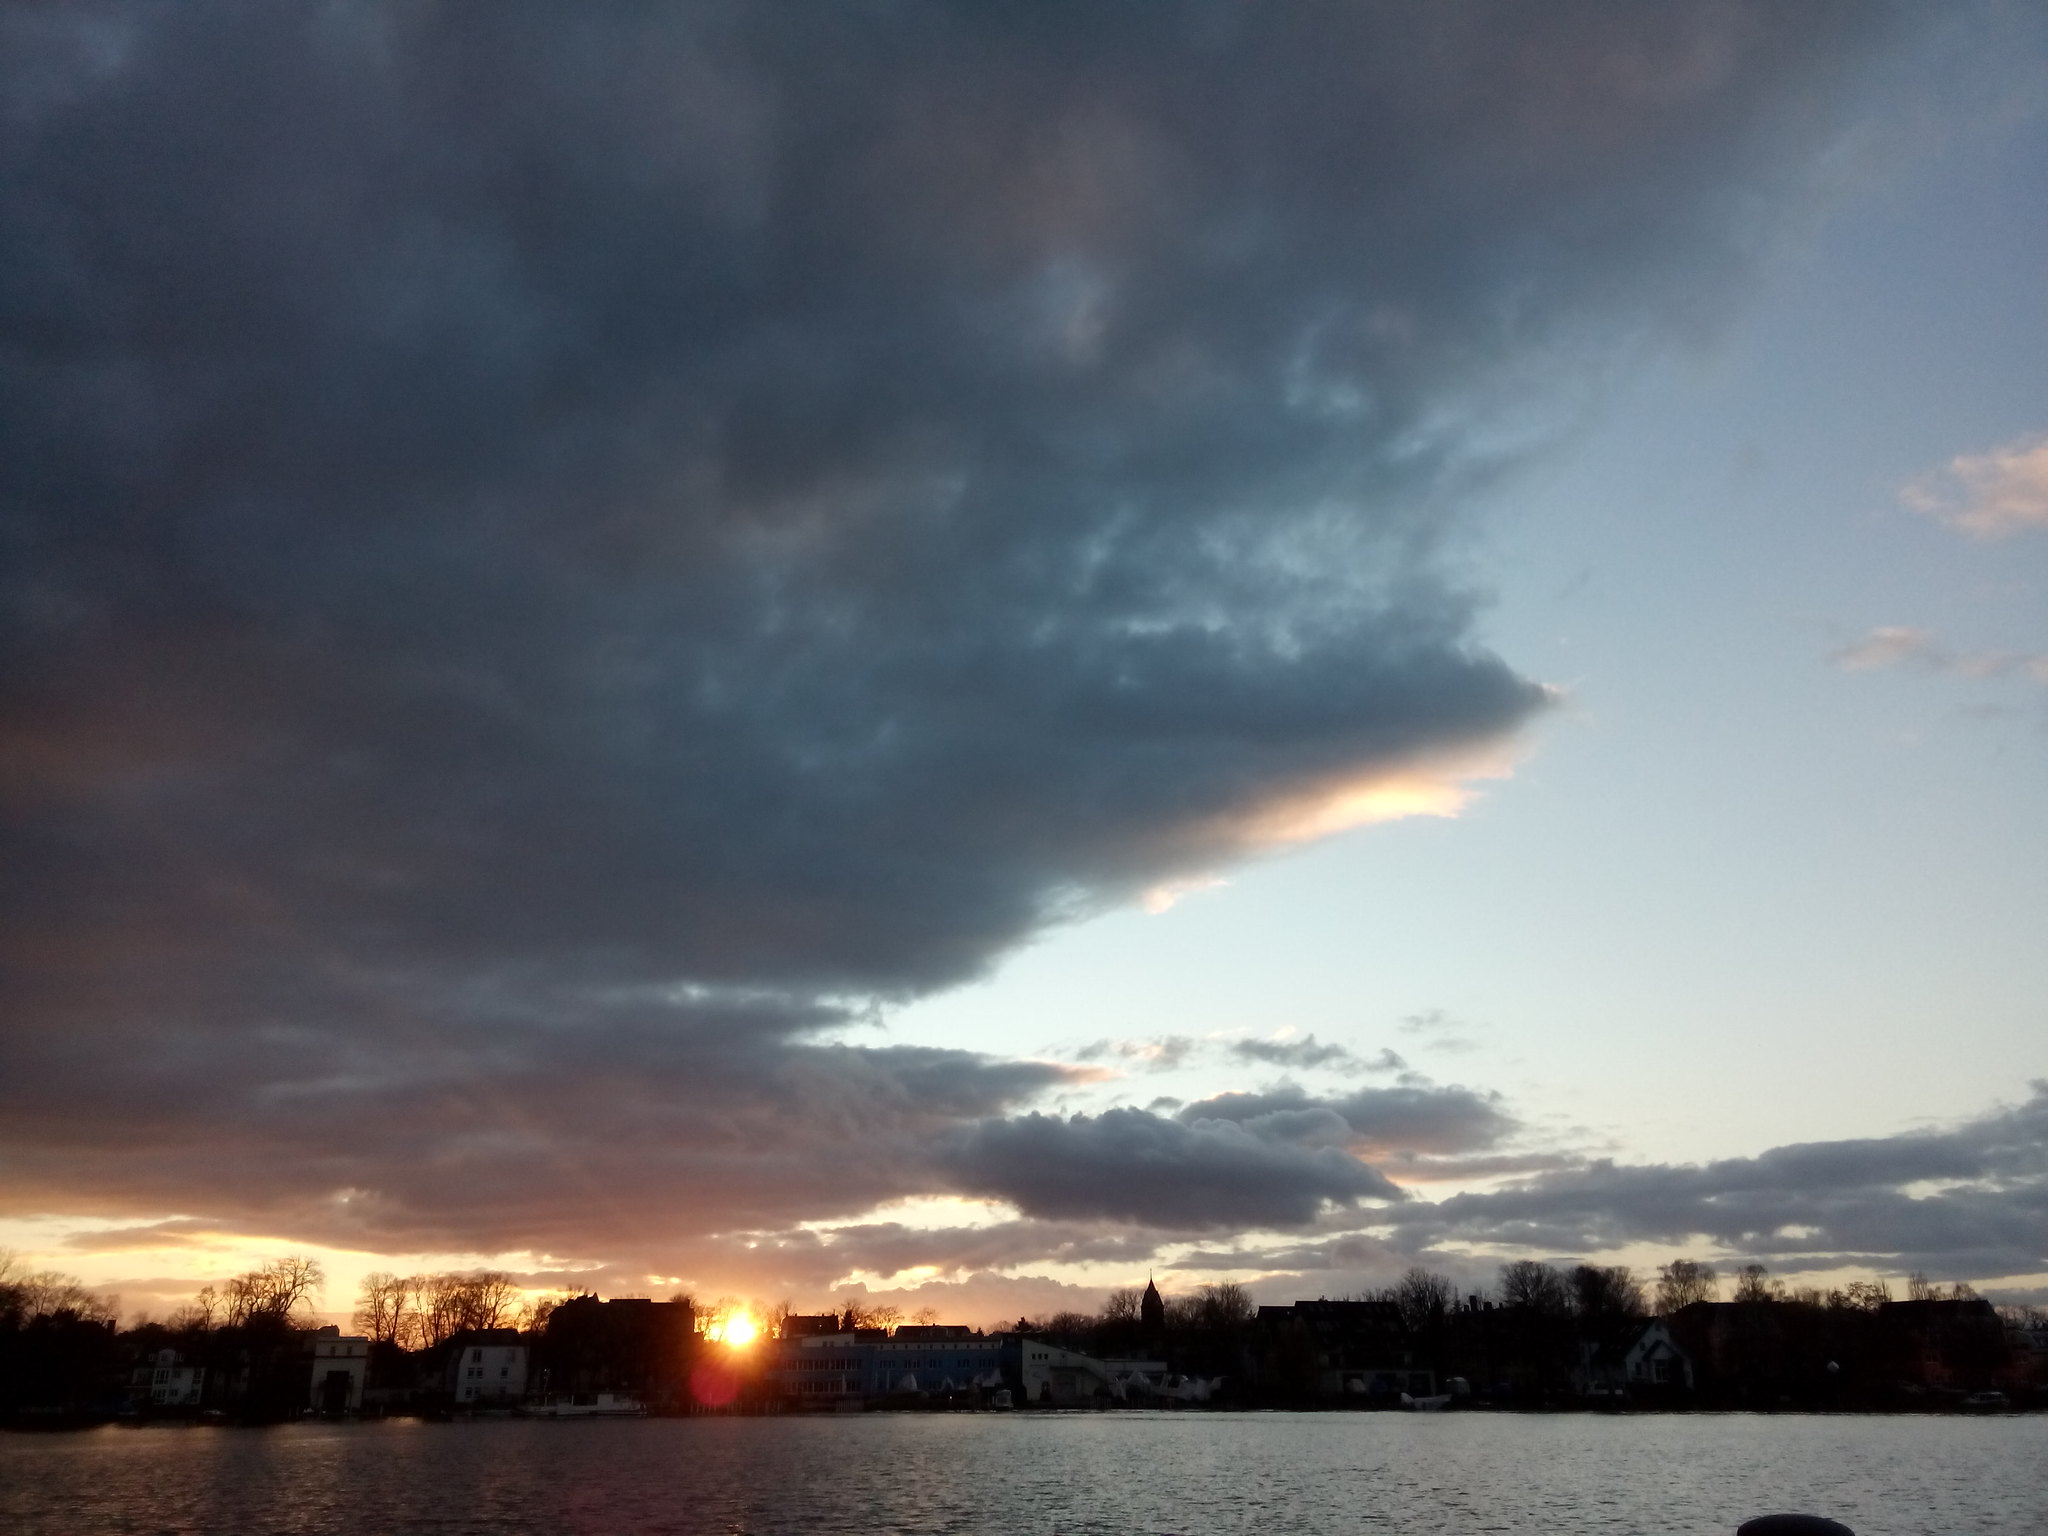 Evening in Köpenick